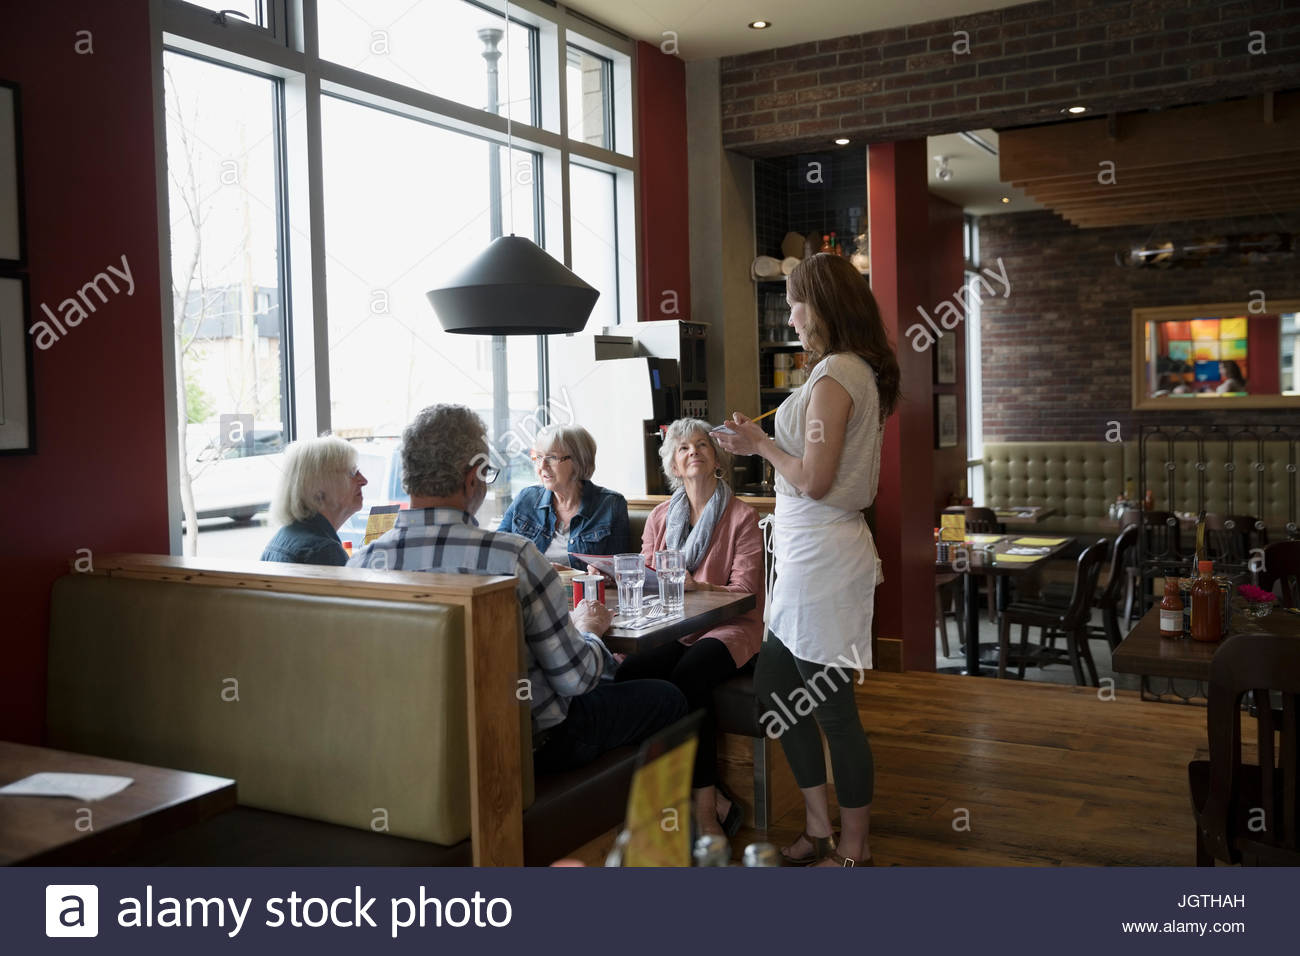 Waitress taking order from senior friends dining in diner booth - Stock Image